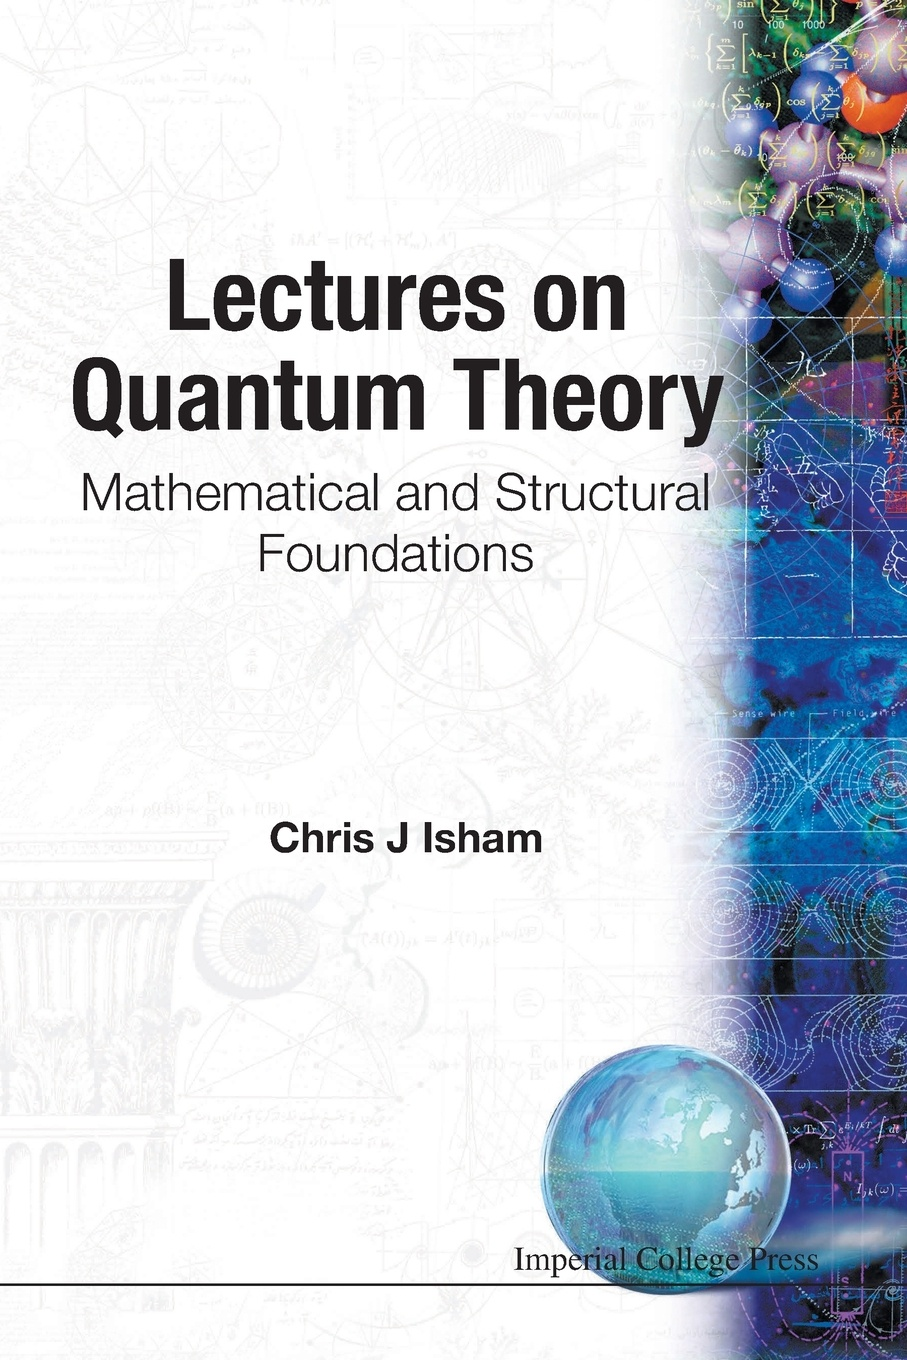 Chris J Isham LECTURES ON QUANTUM THEORY. MATHEMATICAL AND STRUCTURAL FOUNDATIONS chris j isham lectures on quantum theory mathematical and structural foundations